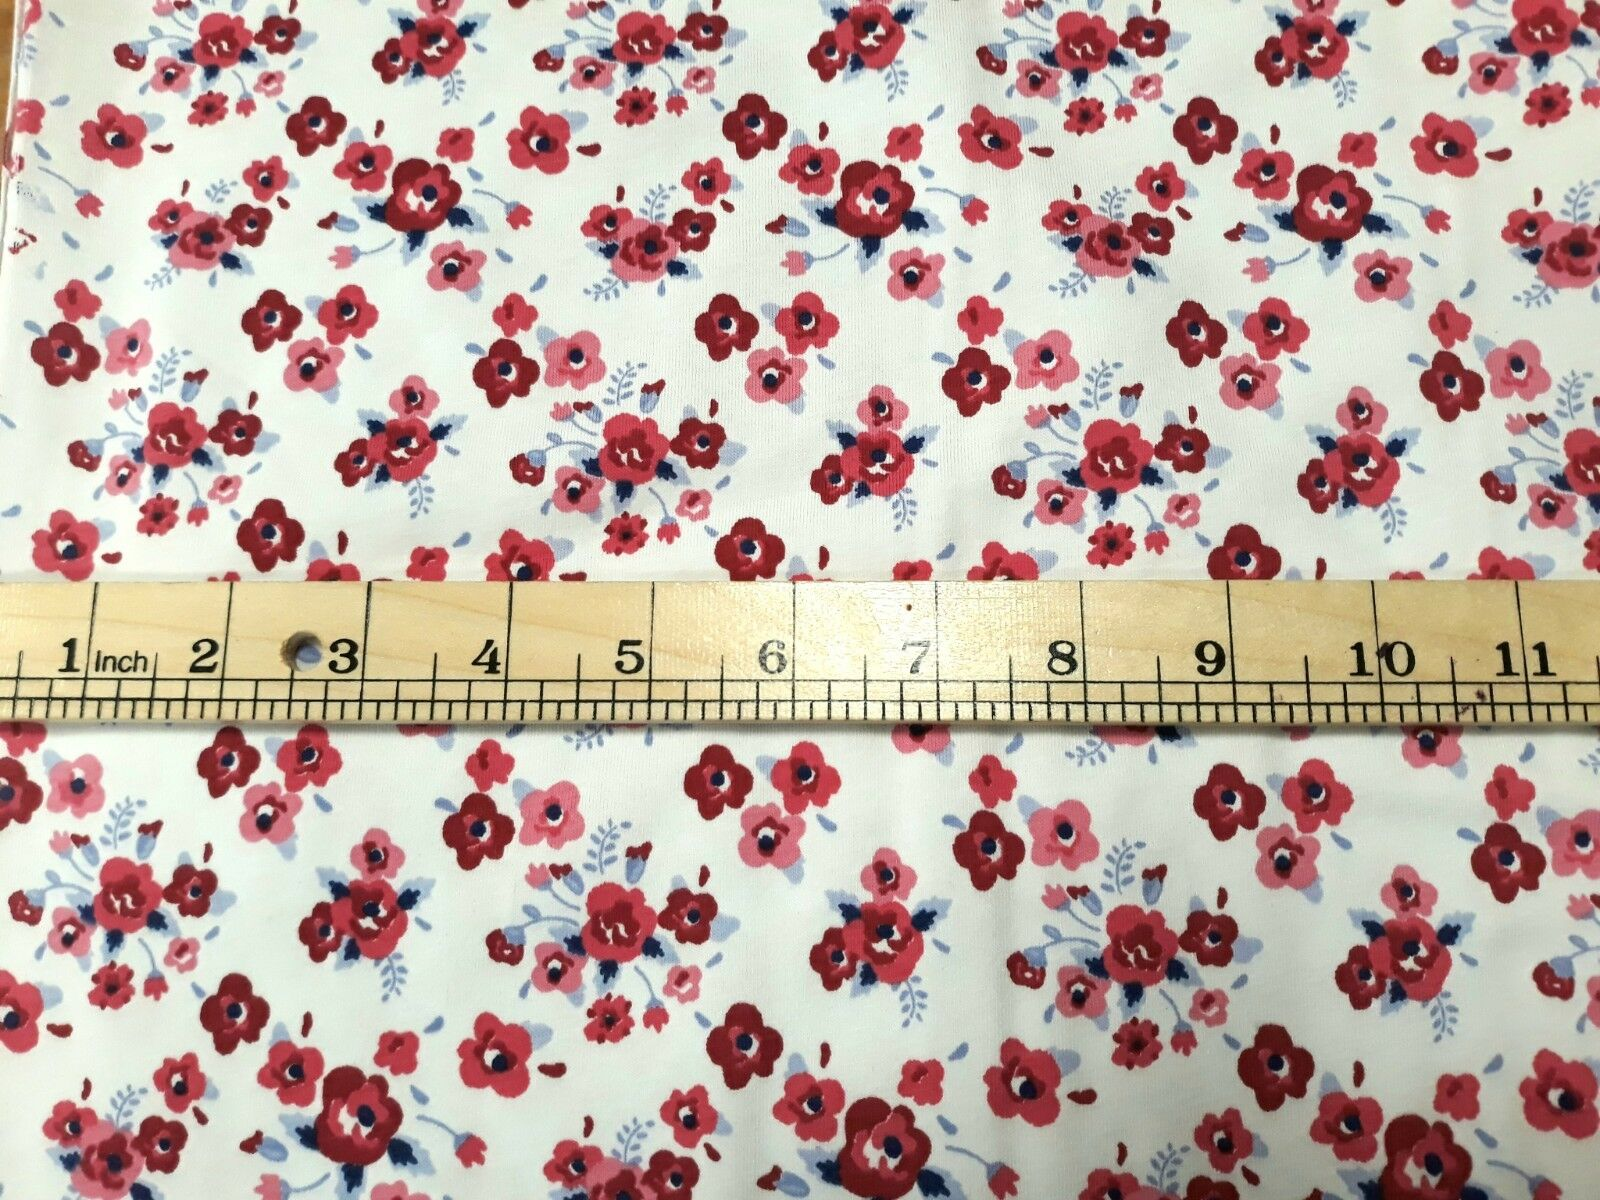 Sewing-Dressmaking-T-Shirts-Leggings WHITE POPPY COTTON SPANDEX JERSEY FABRIC